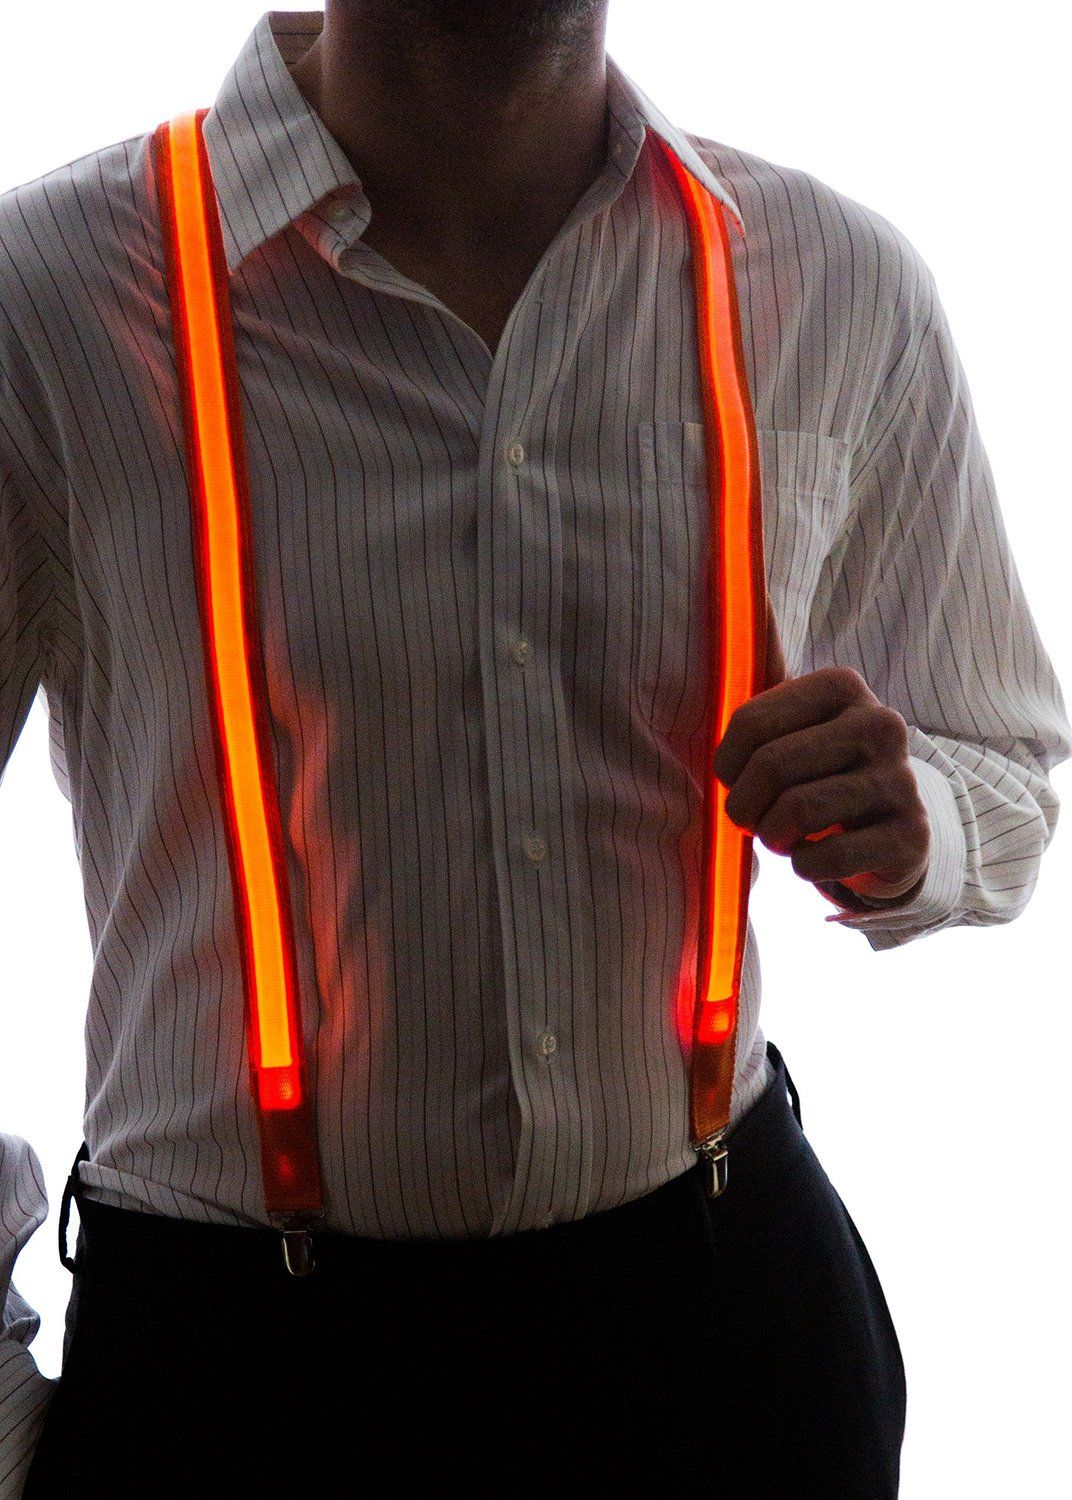 LED Light Up Suspenders 1